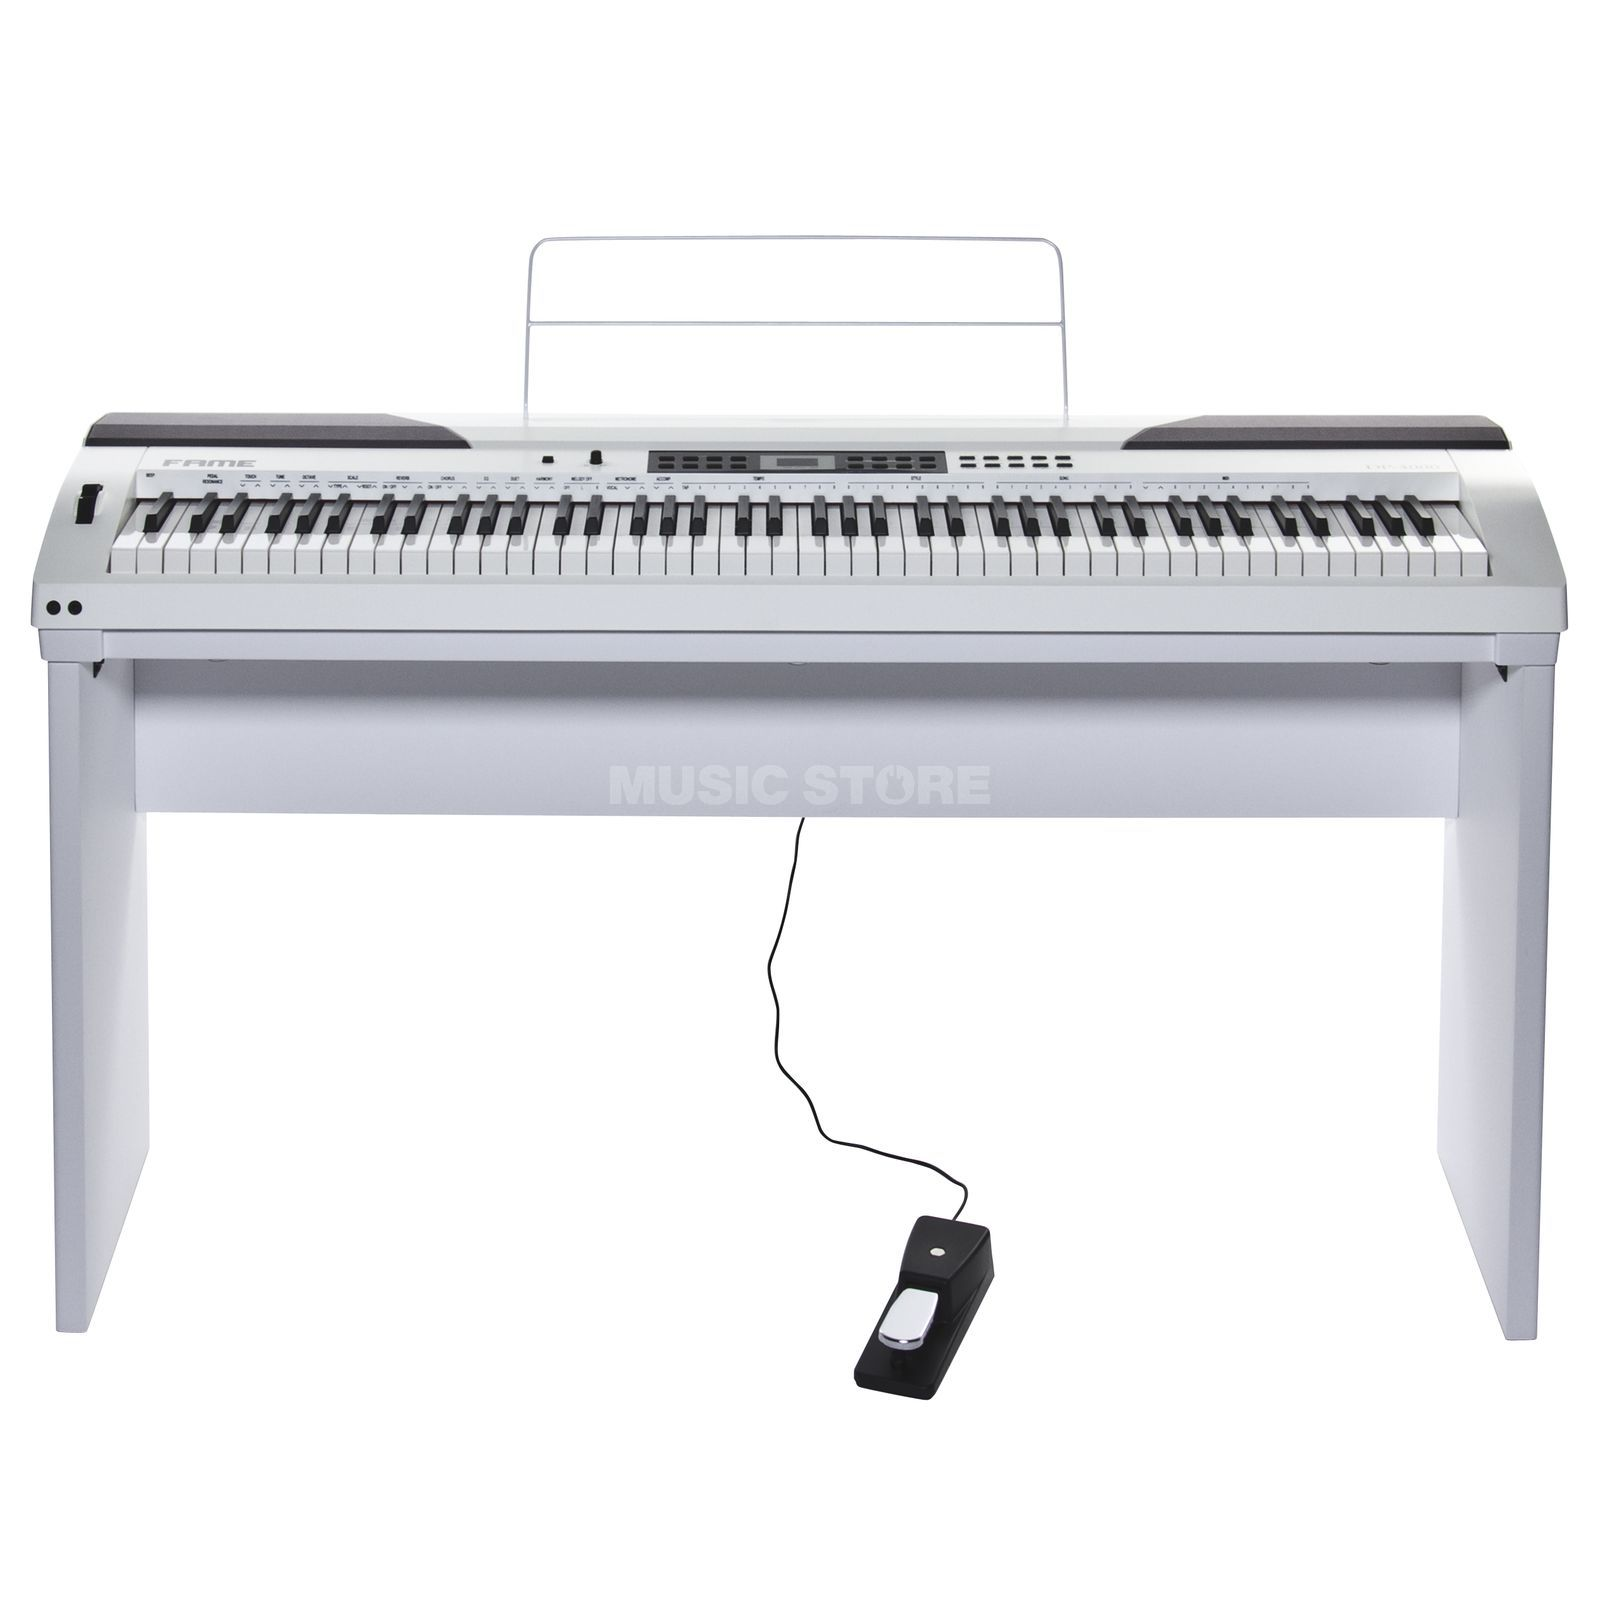 Fame DP-4000 WH Digital-Piano Set incl. stand Produktbillede